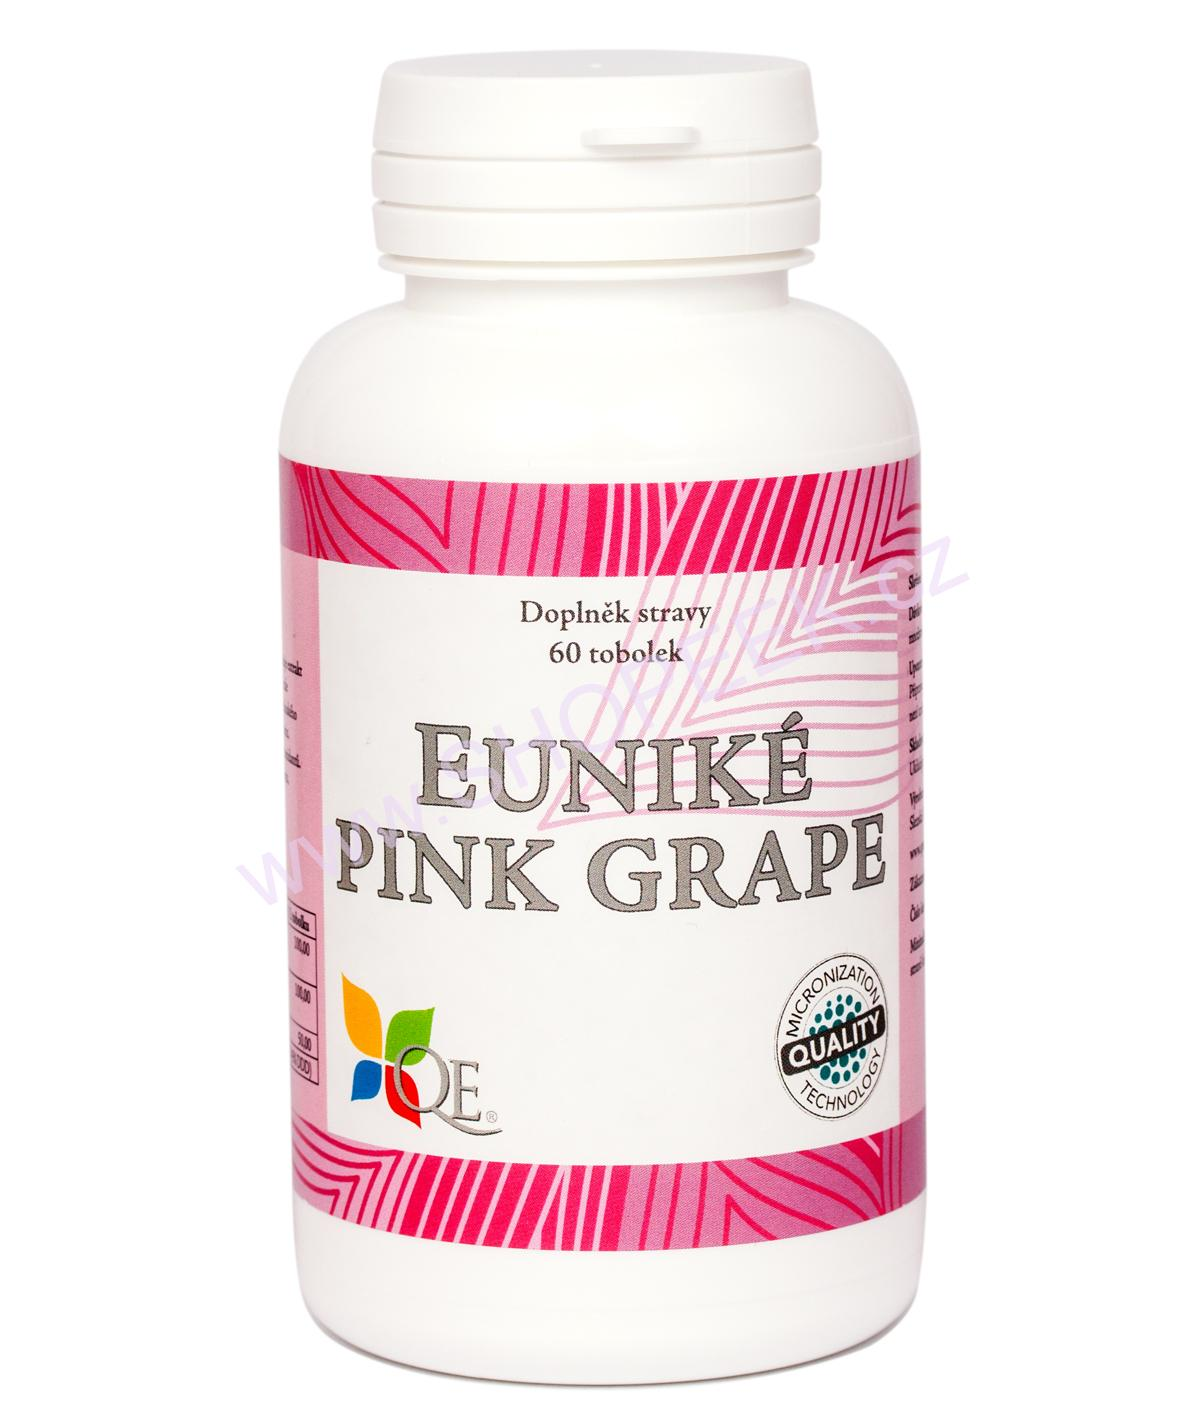 Queen Eunike PINK GRAPE 60 tbl.